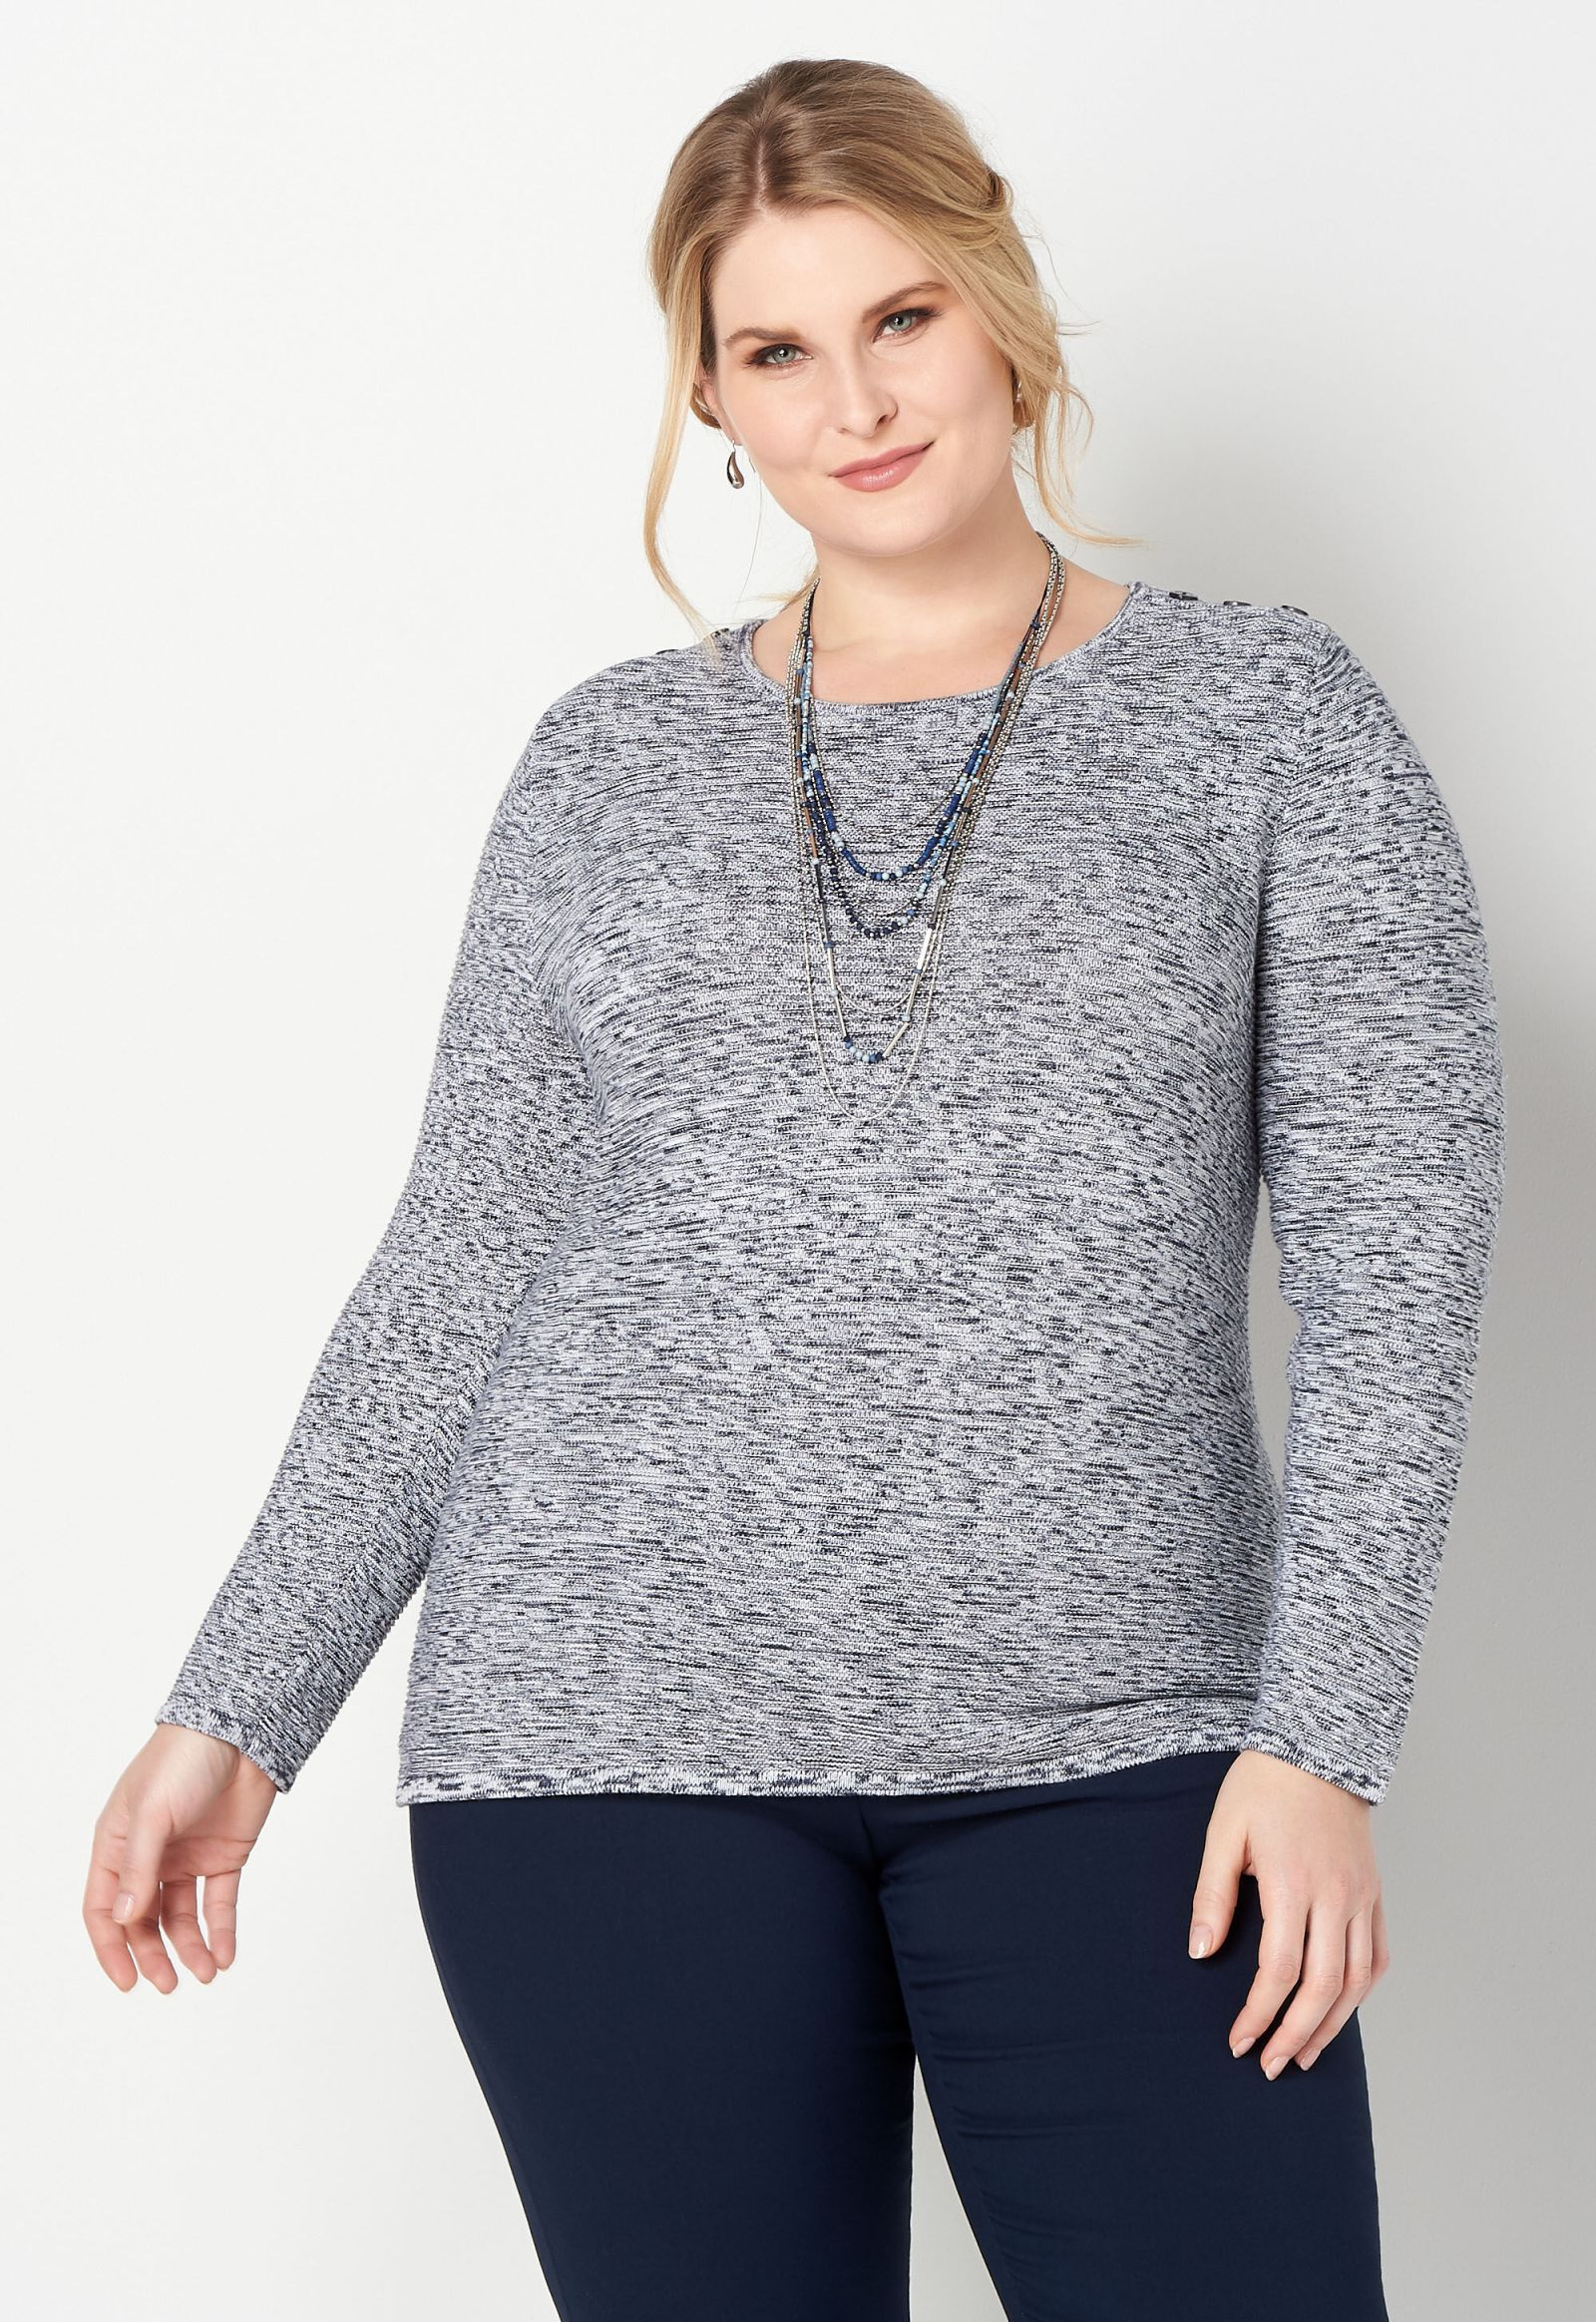 Space Dye Ottoman Plus Size Pullover Sweater 2